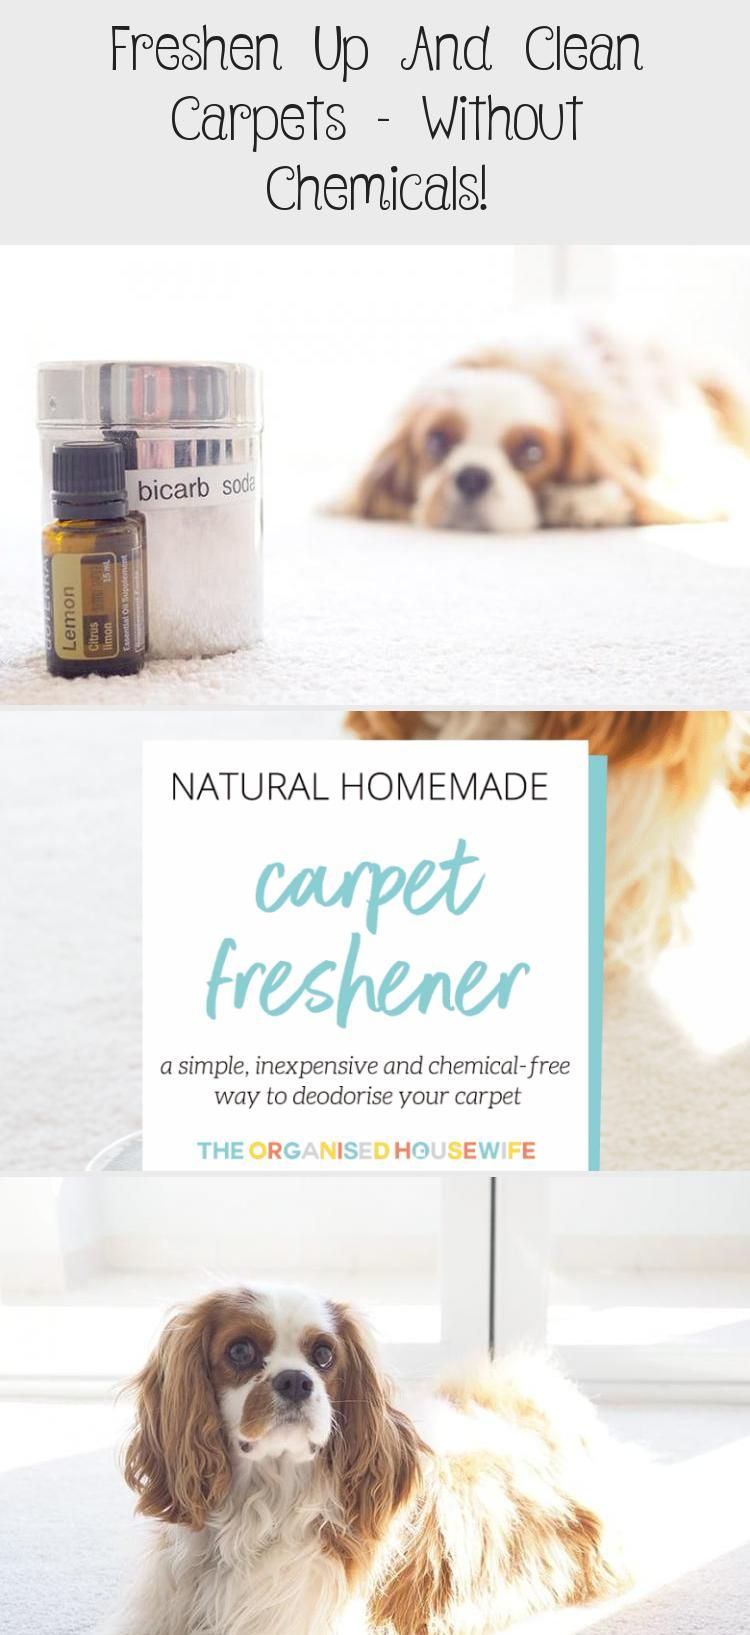 Freshen Up And Clean Carpets Without Chemicals In 2020 How To Clean Carpet Homemade Carpet Cleaning Solution Commercial Carpet Cleaning